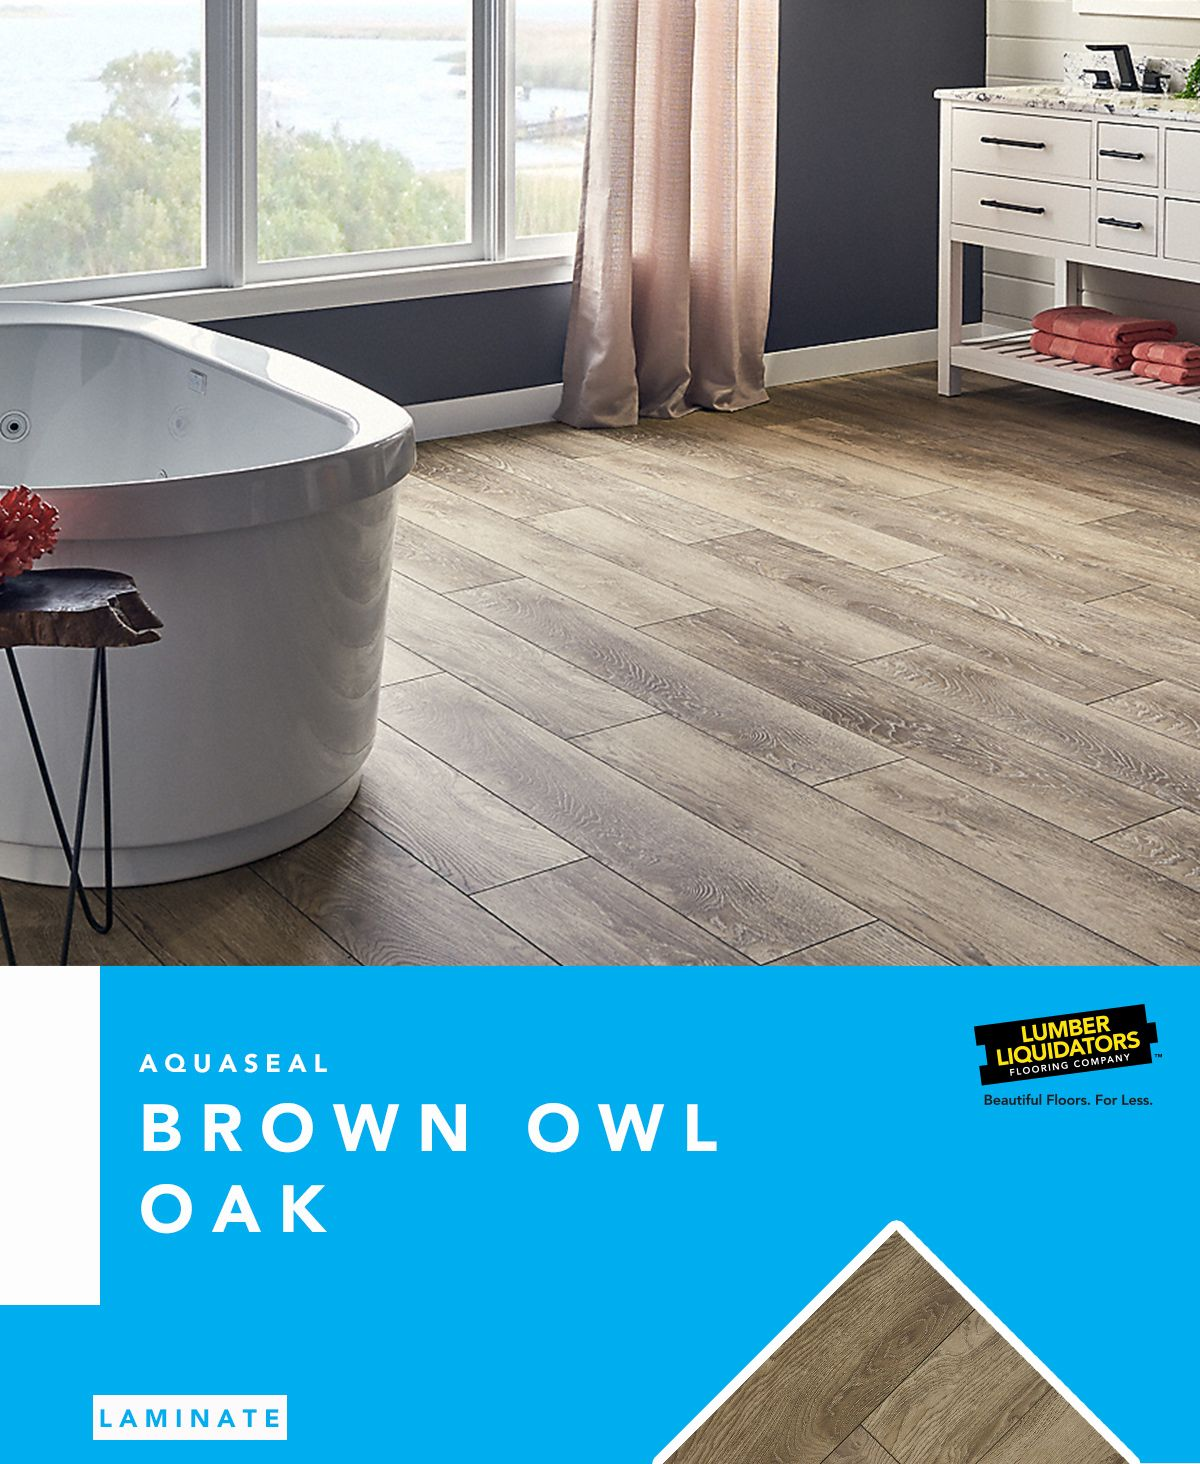 AquaSeal's Brown Owl Oak offers easy installation ...